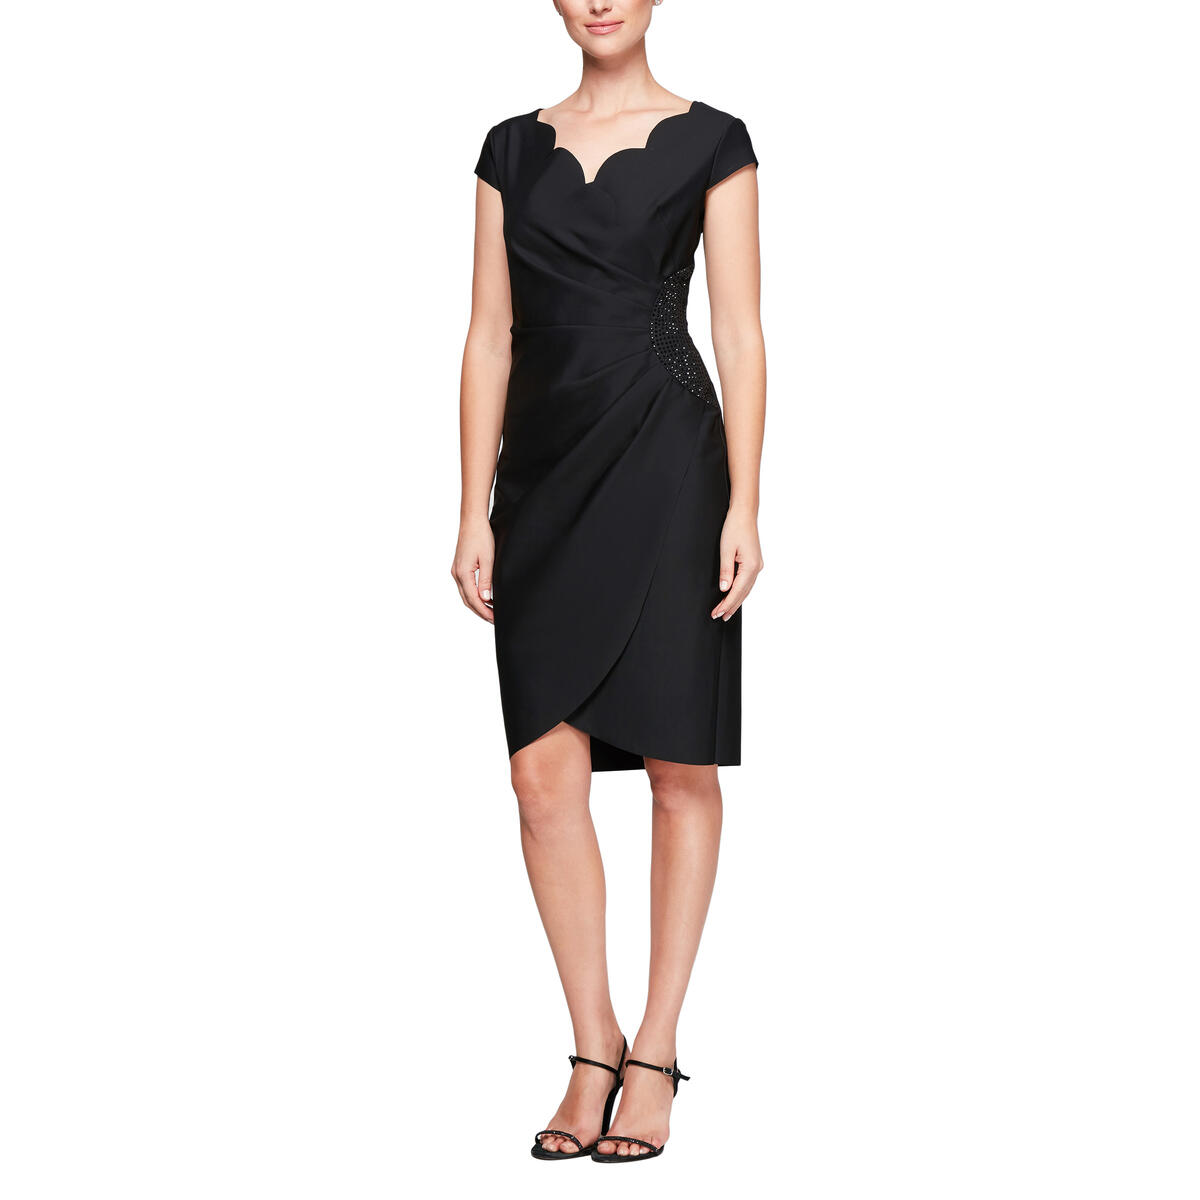 ALEX APPAREL GROUP INC - Scalloped Cap Sleeve Cocktail Dress